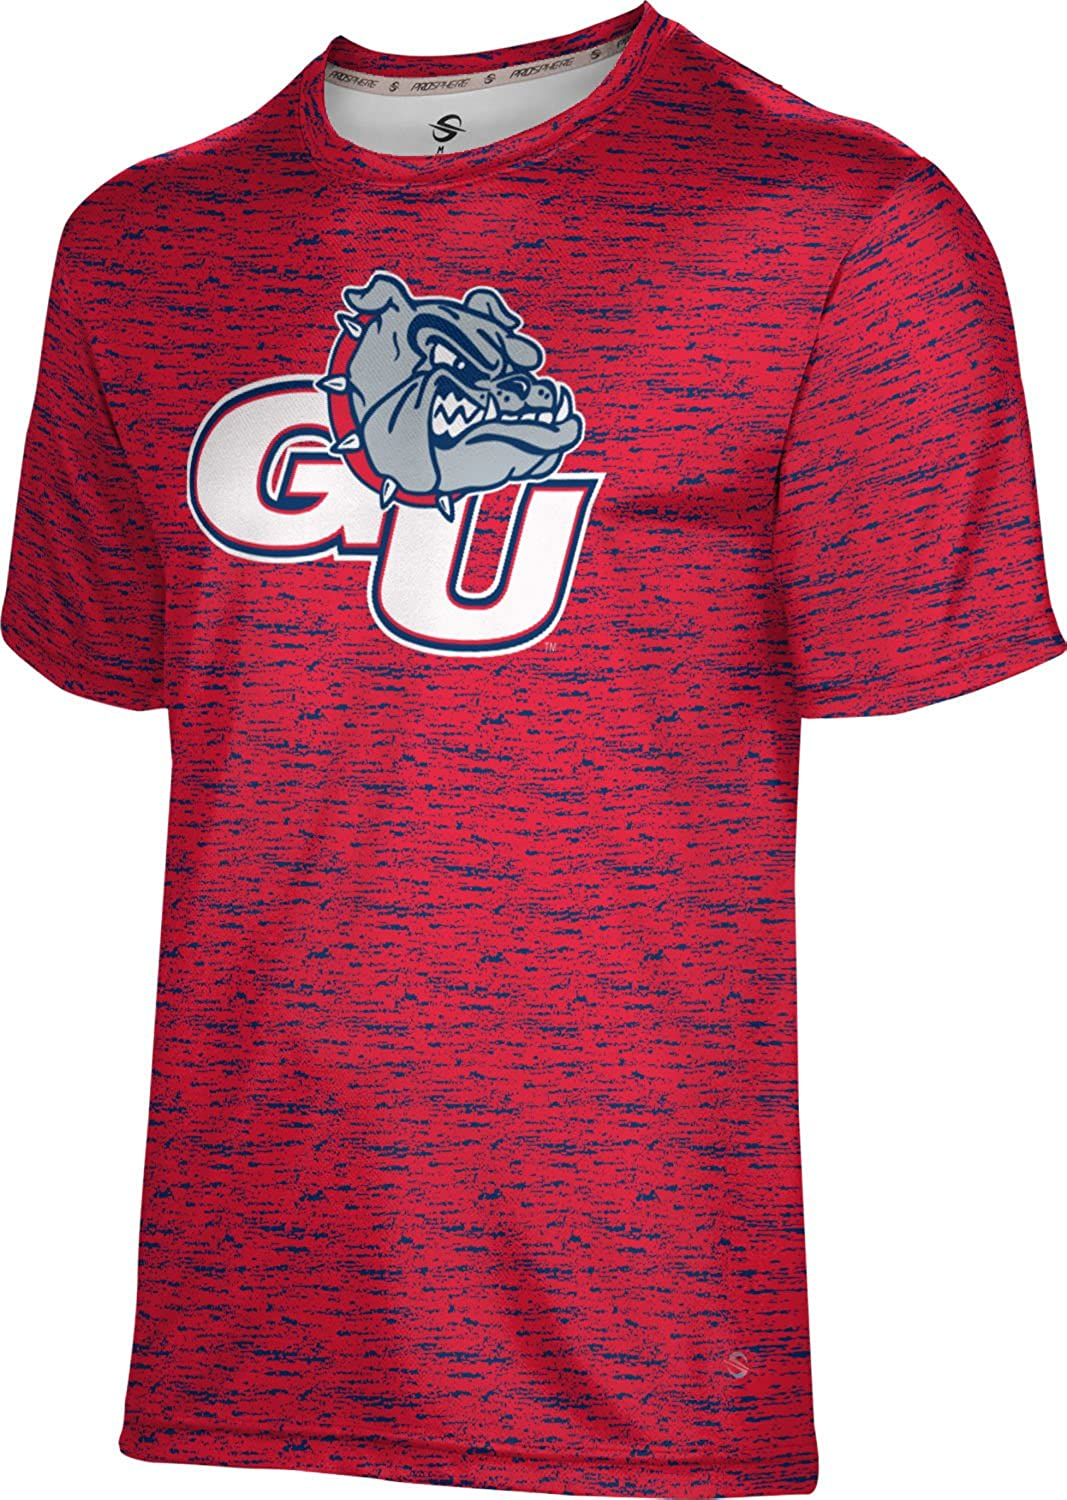 Easy-to-use ProSphere Gonzaga University Men's T-Shirt Brushed Performance Department store